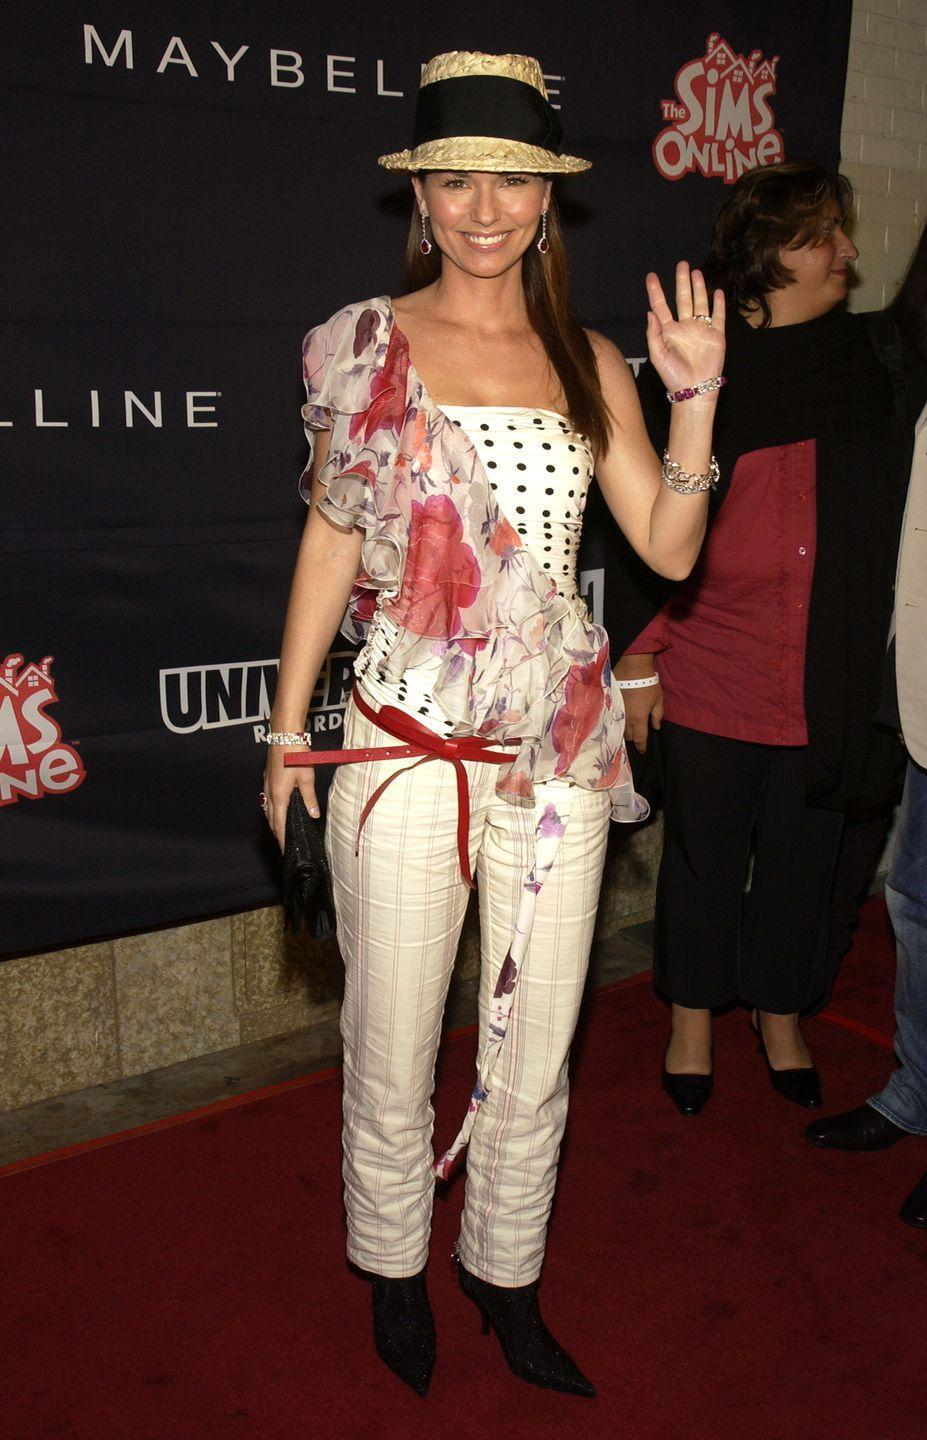 <p>Shania opted for a polka-dot top featuring a cross-body chunk of floral at a Teen People and Universal Records event honoring Nelly.</p>